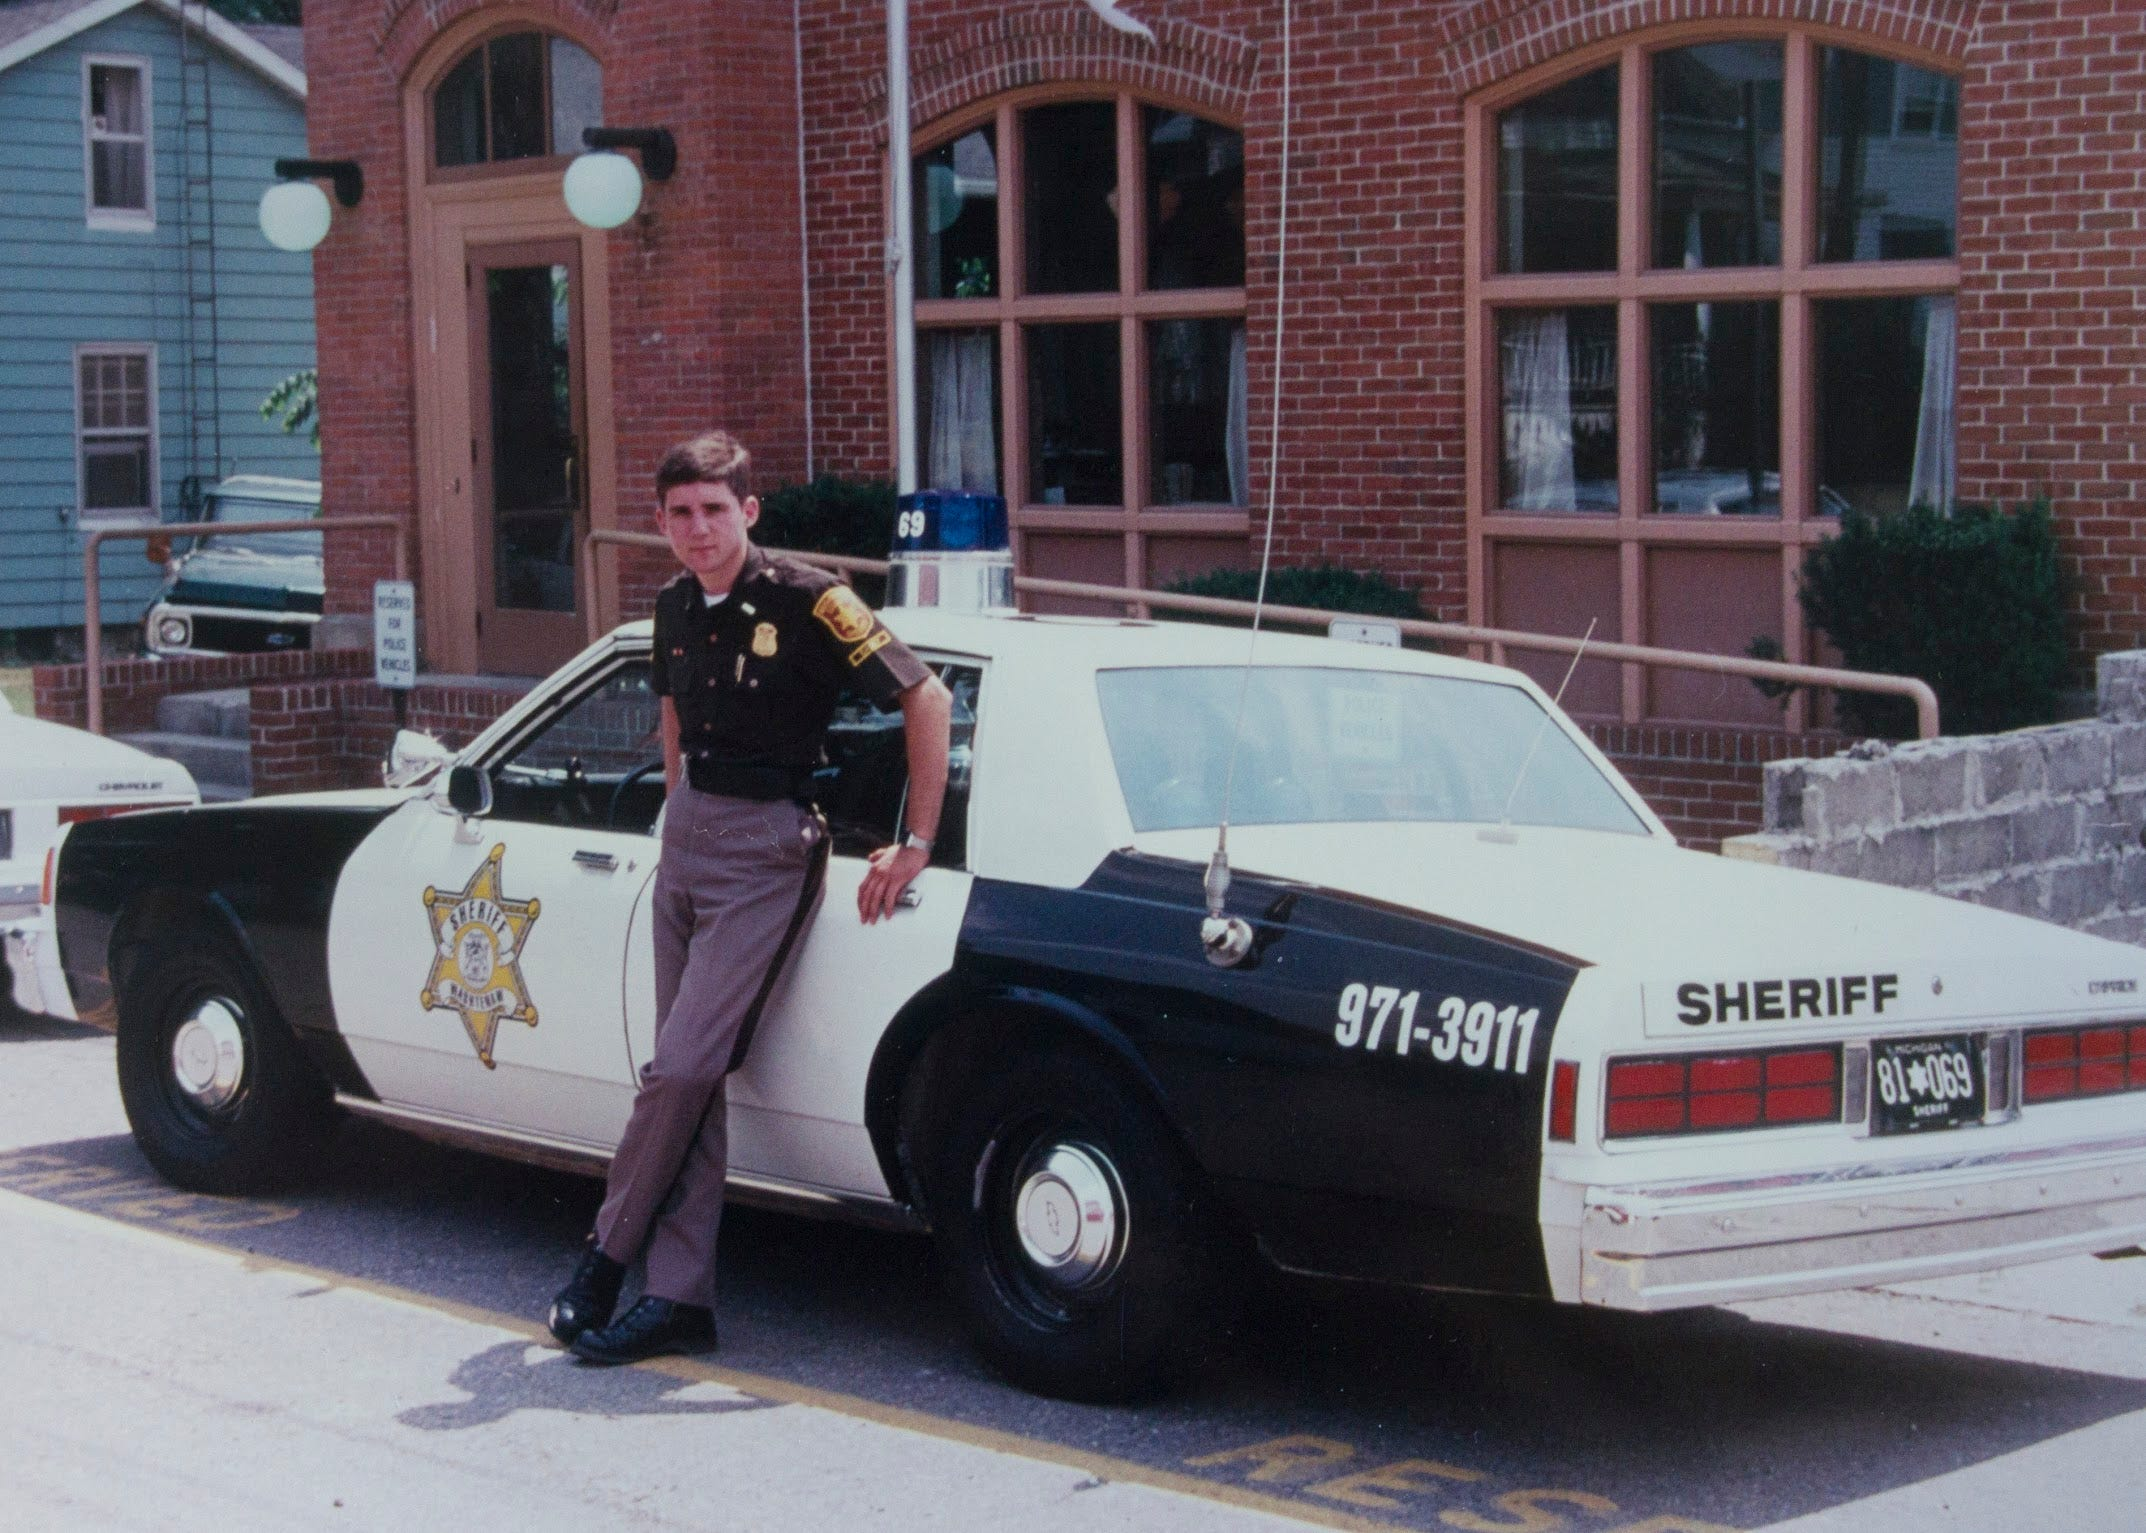 Paul Whelan poses in front of a Washtenaw County Sheriff's vehicle in this undated photo.